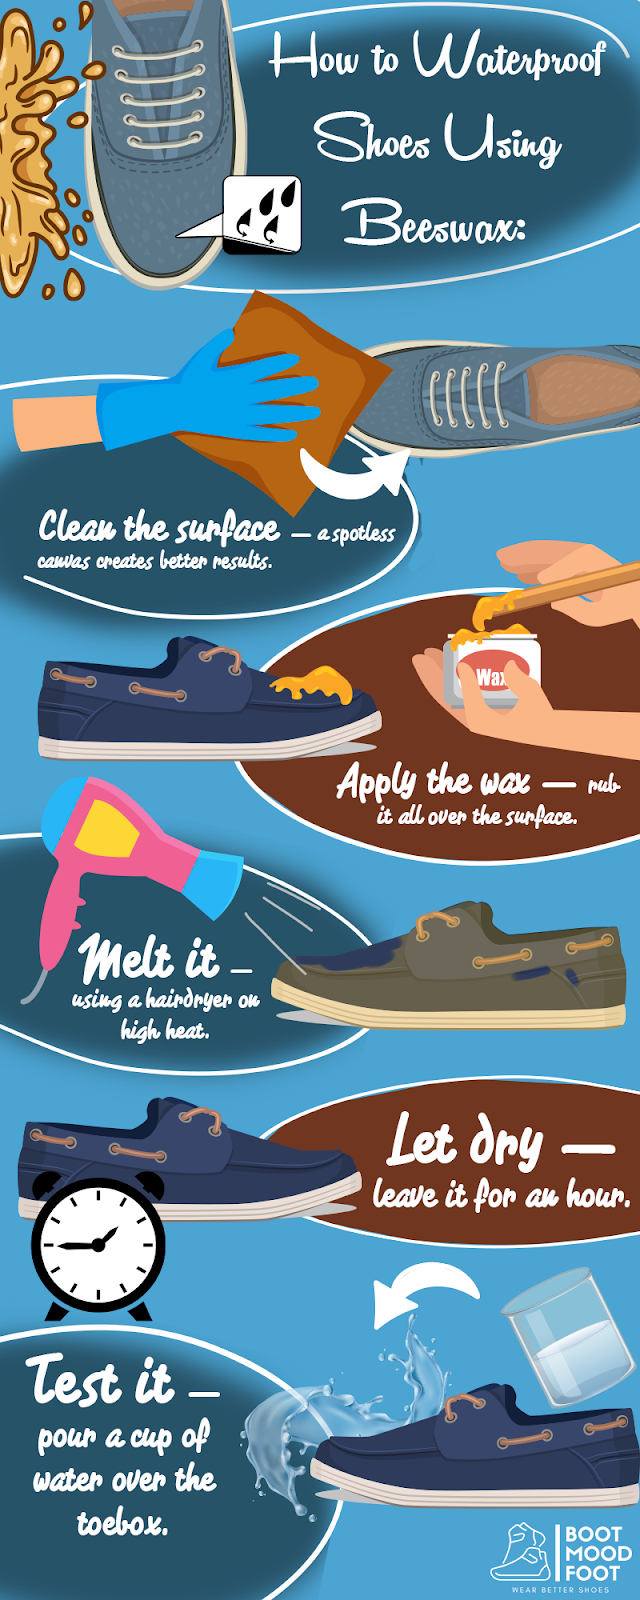 How Many ways to Waterproof Shoes